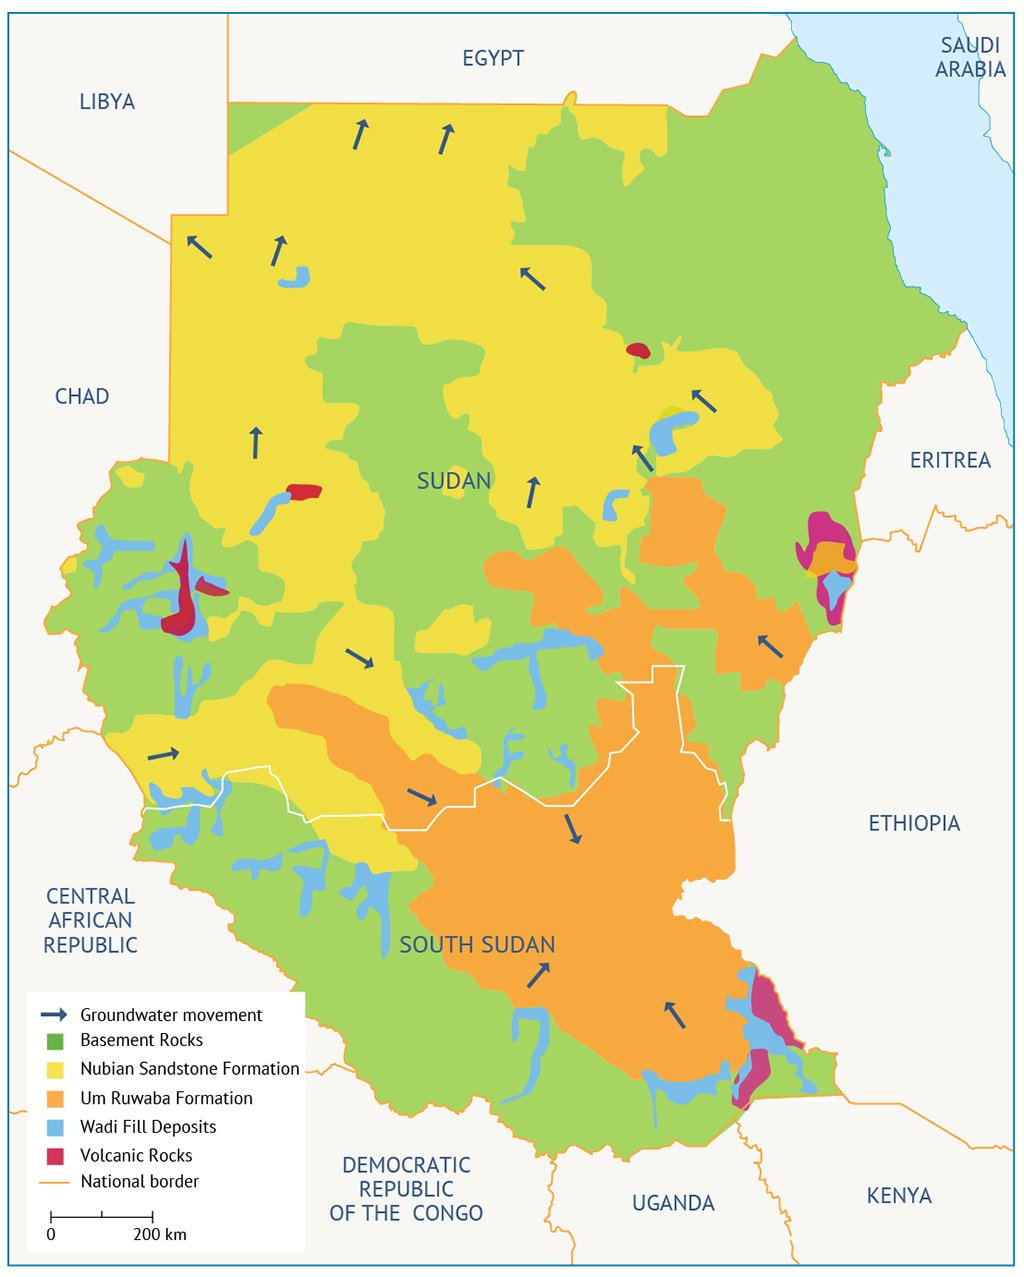 water resources in Sudan River Nile Basin